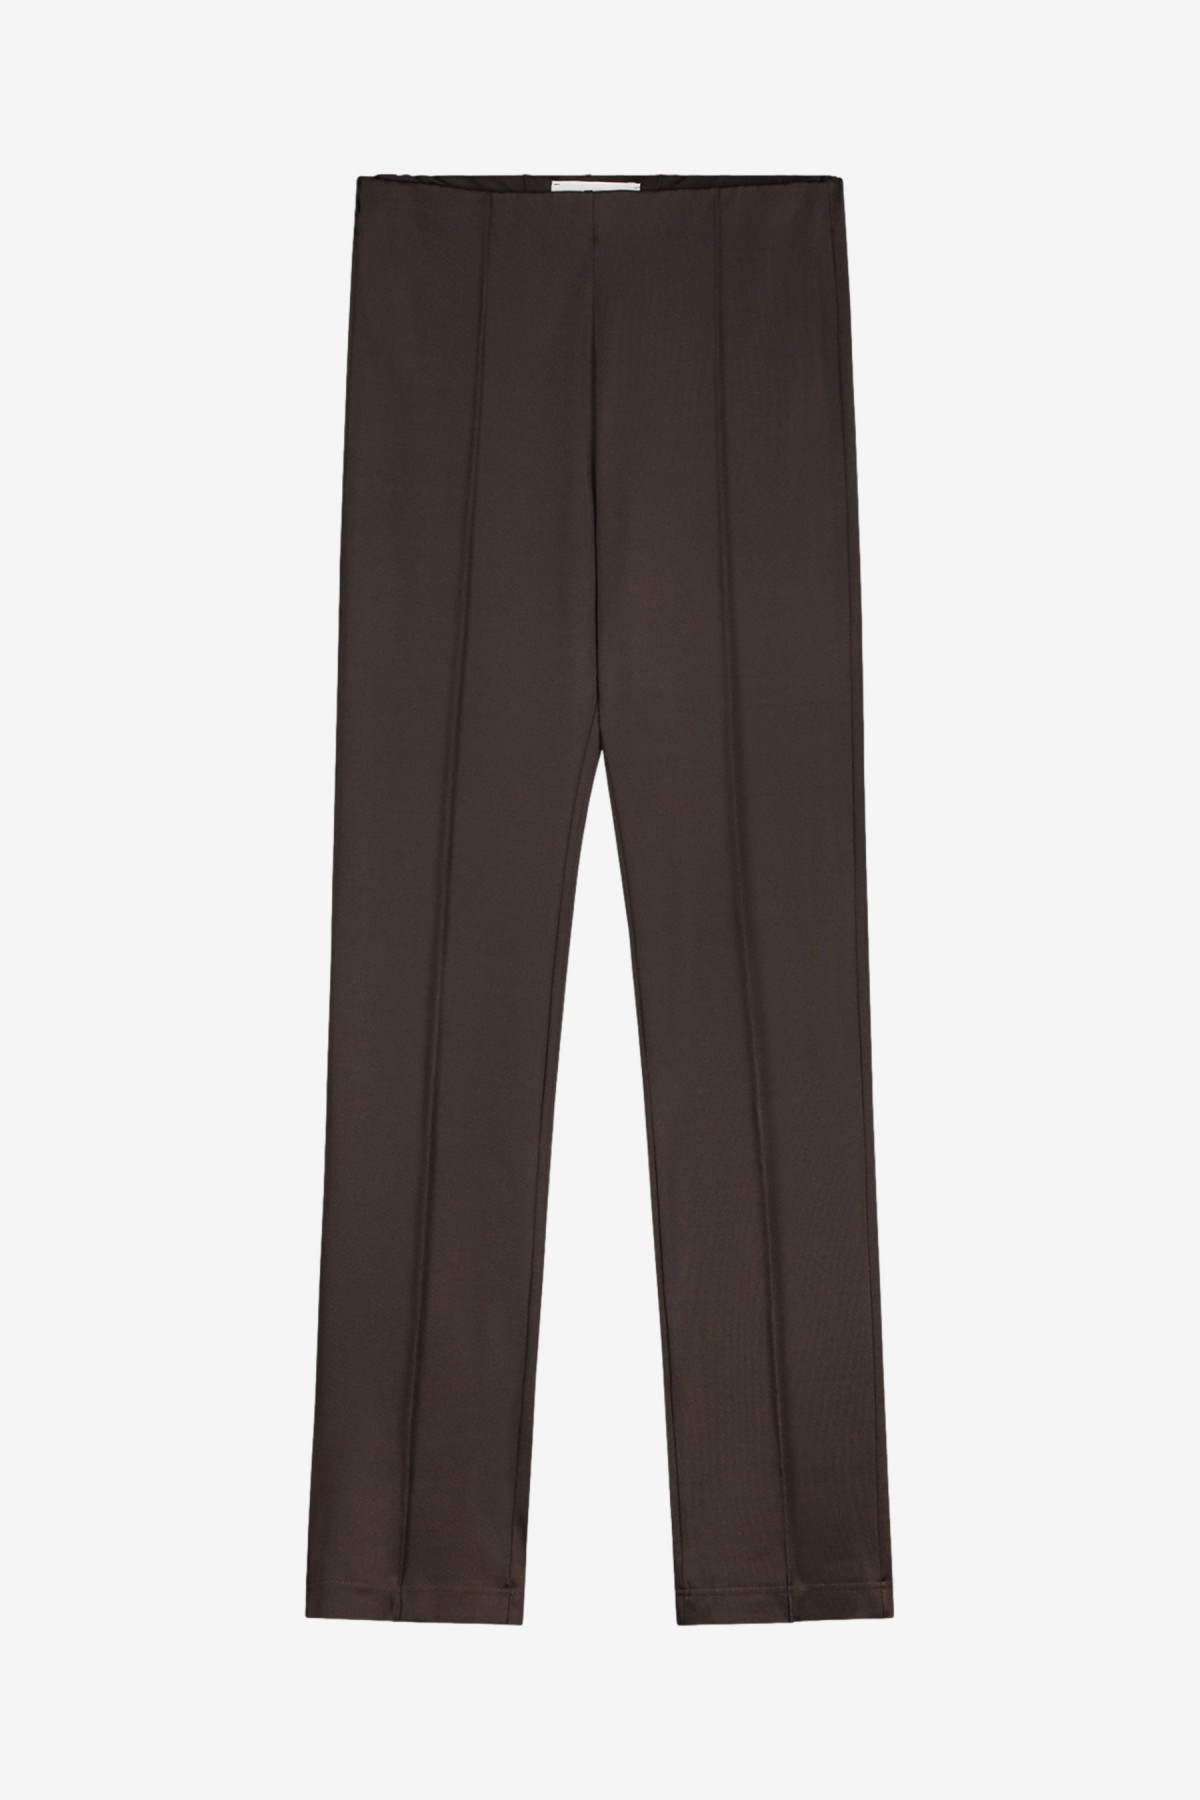 The Five Studio The Everyday Trousers in Fudge